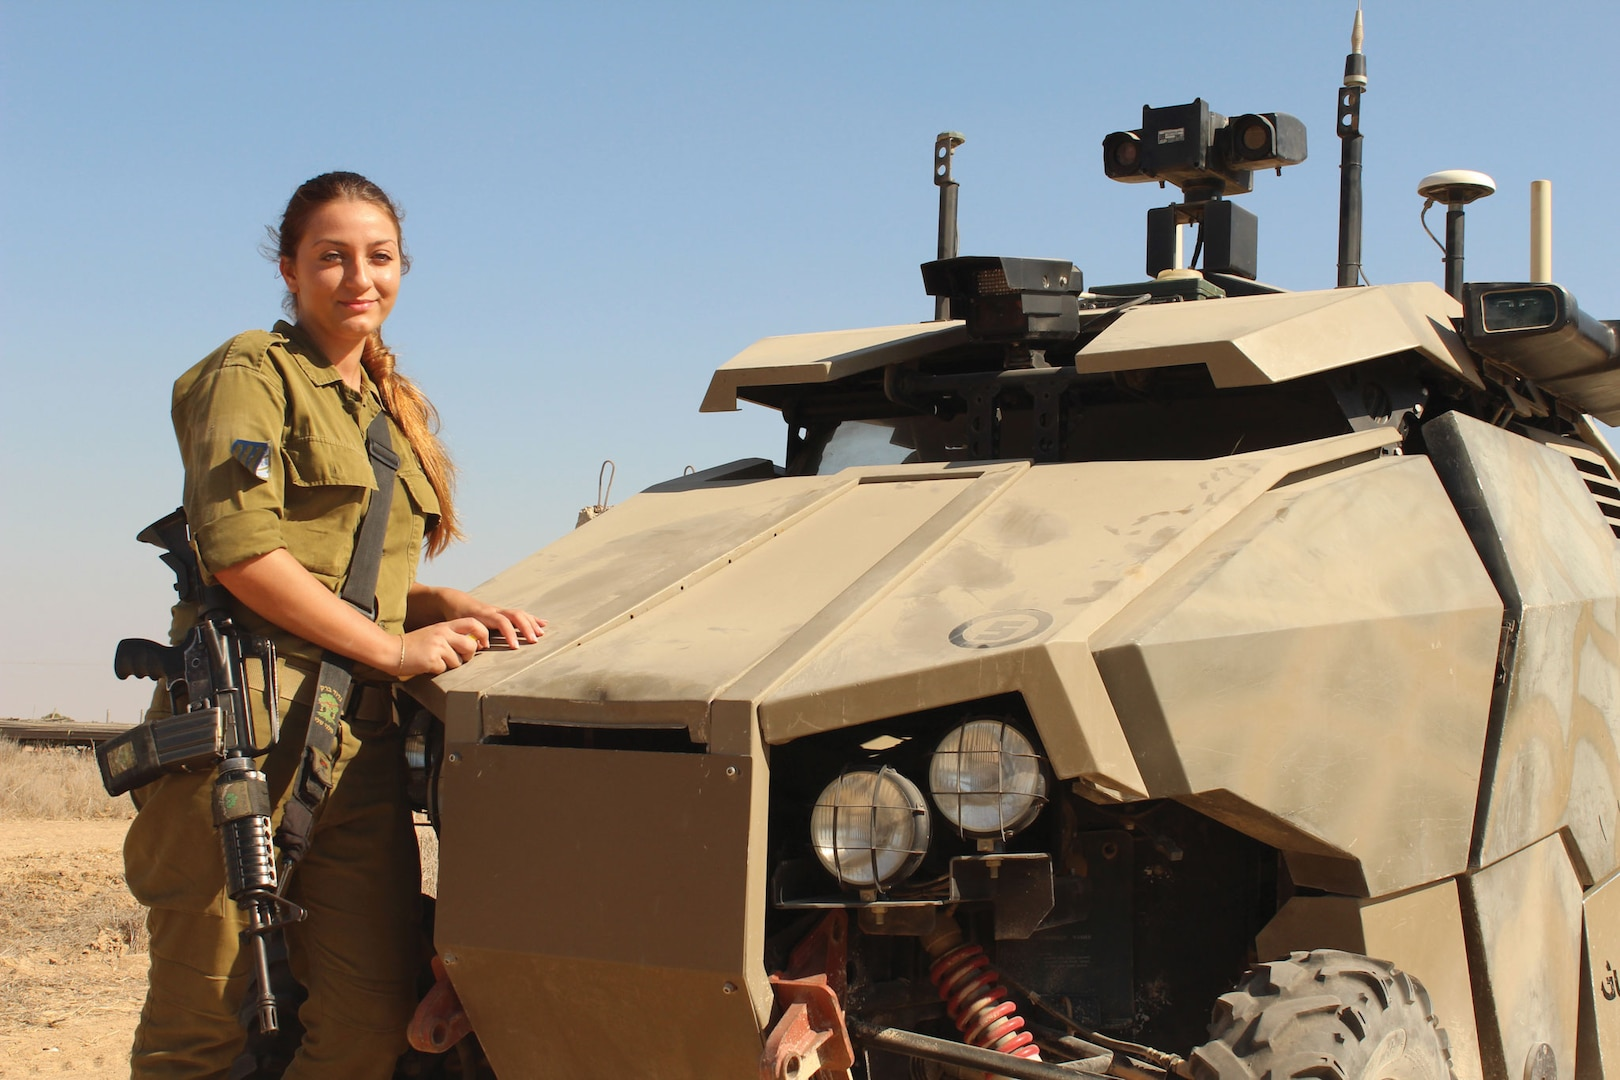 Israeli soldier with UVG.